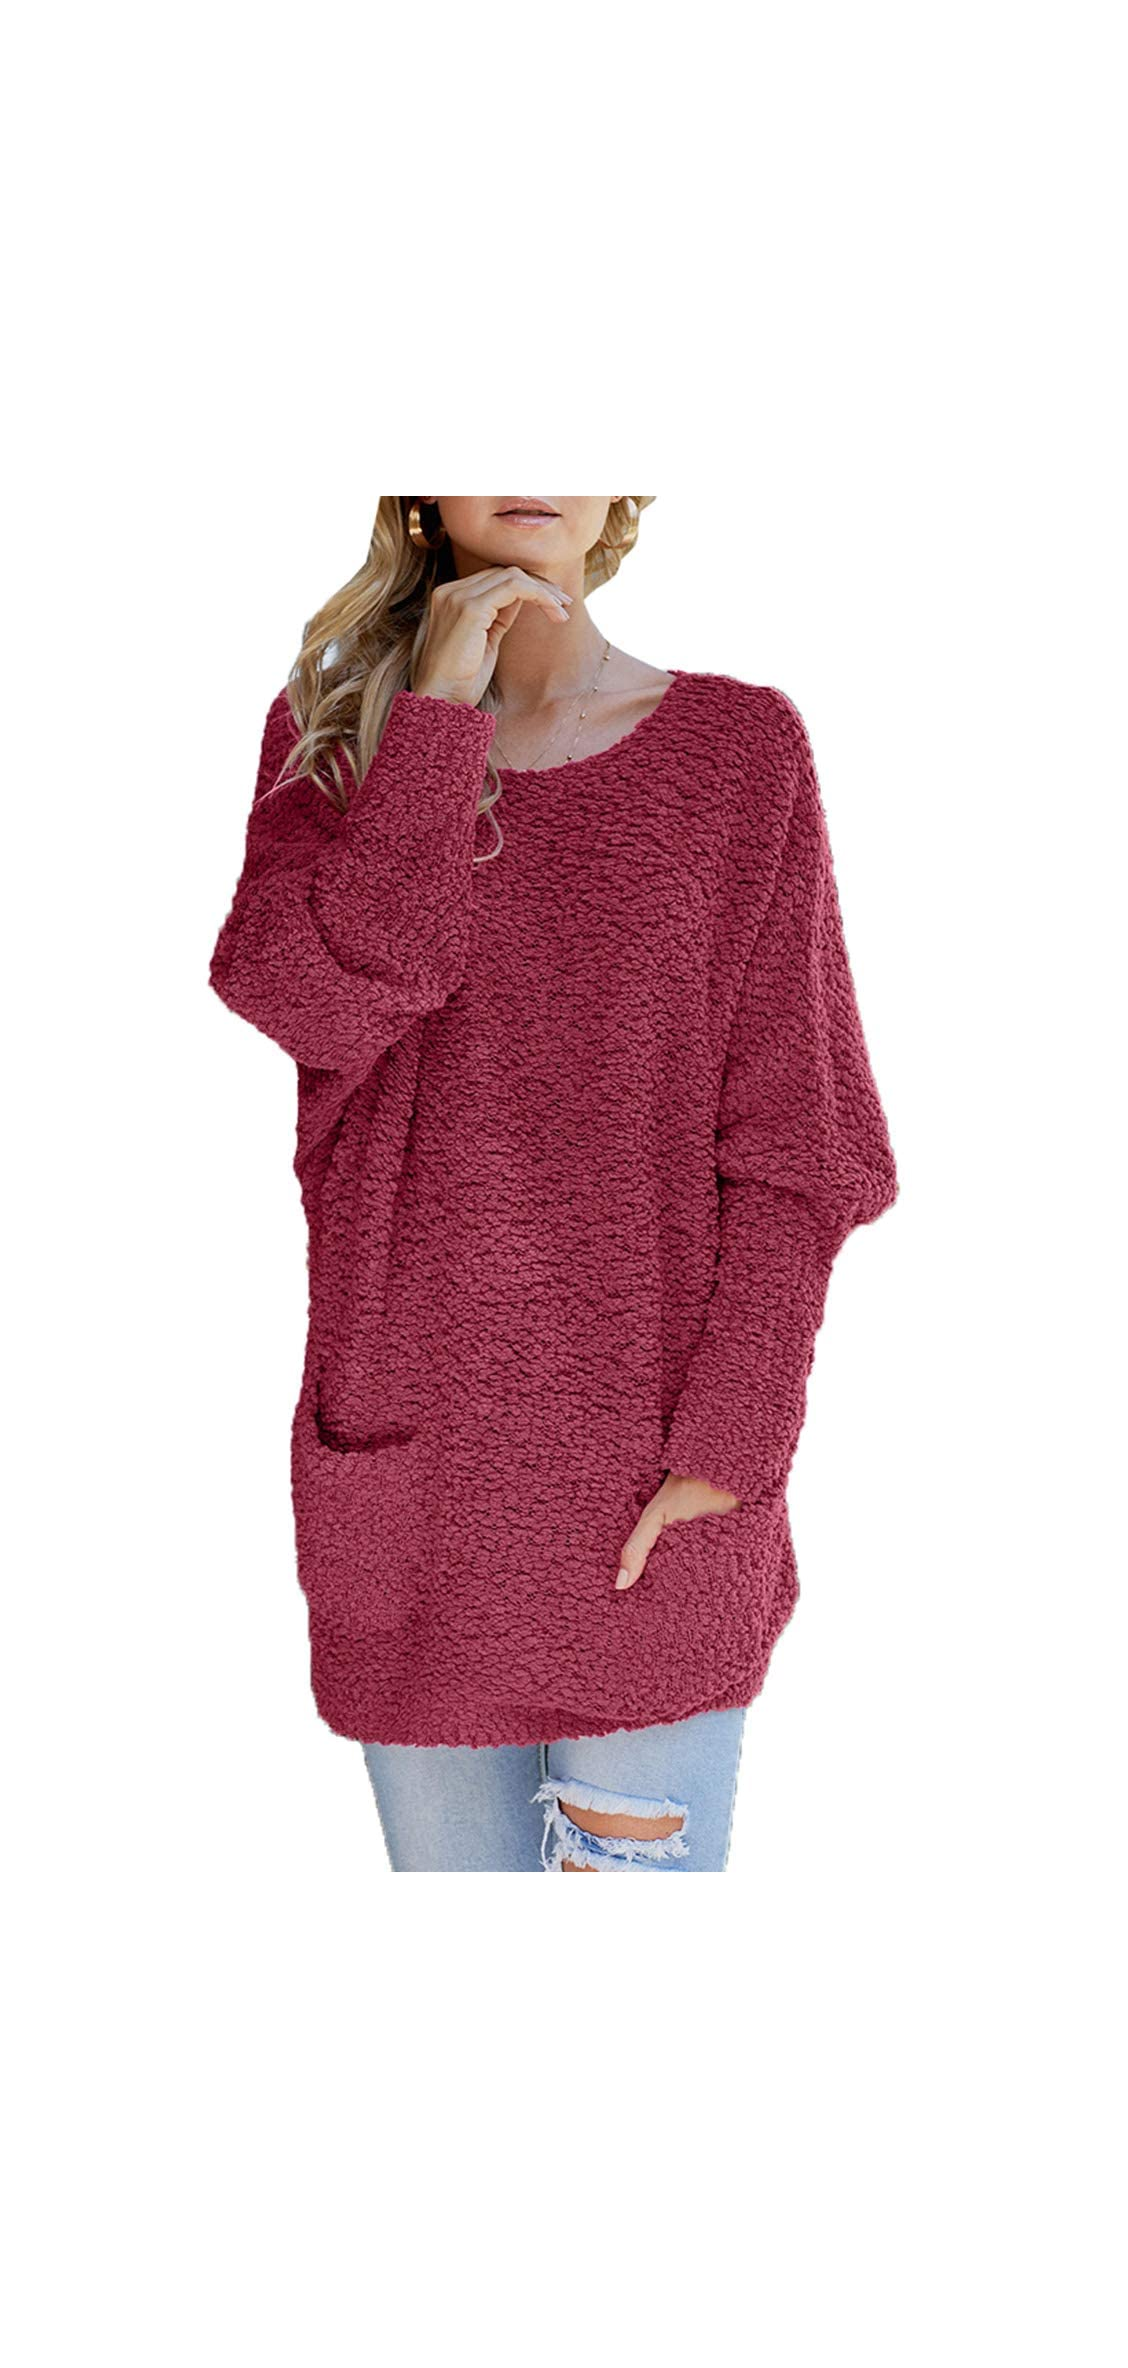 Womens Casual Fuzzy Batwing Long Sleeve Crew Neck